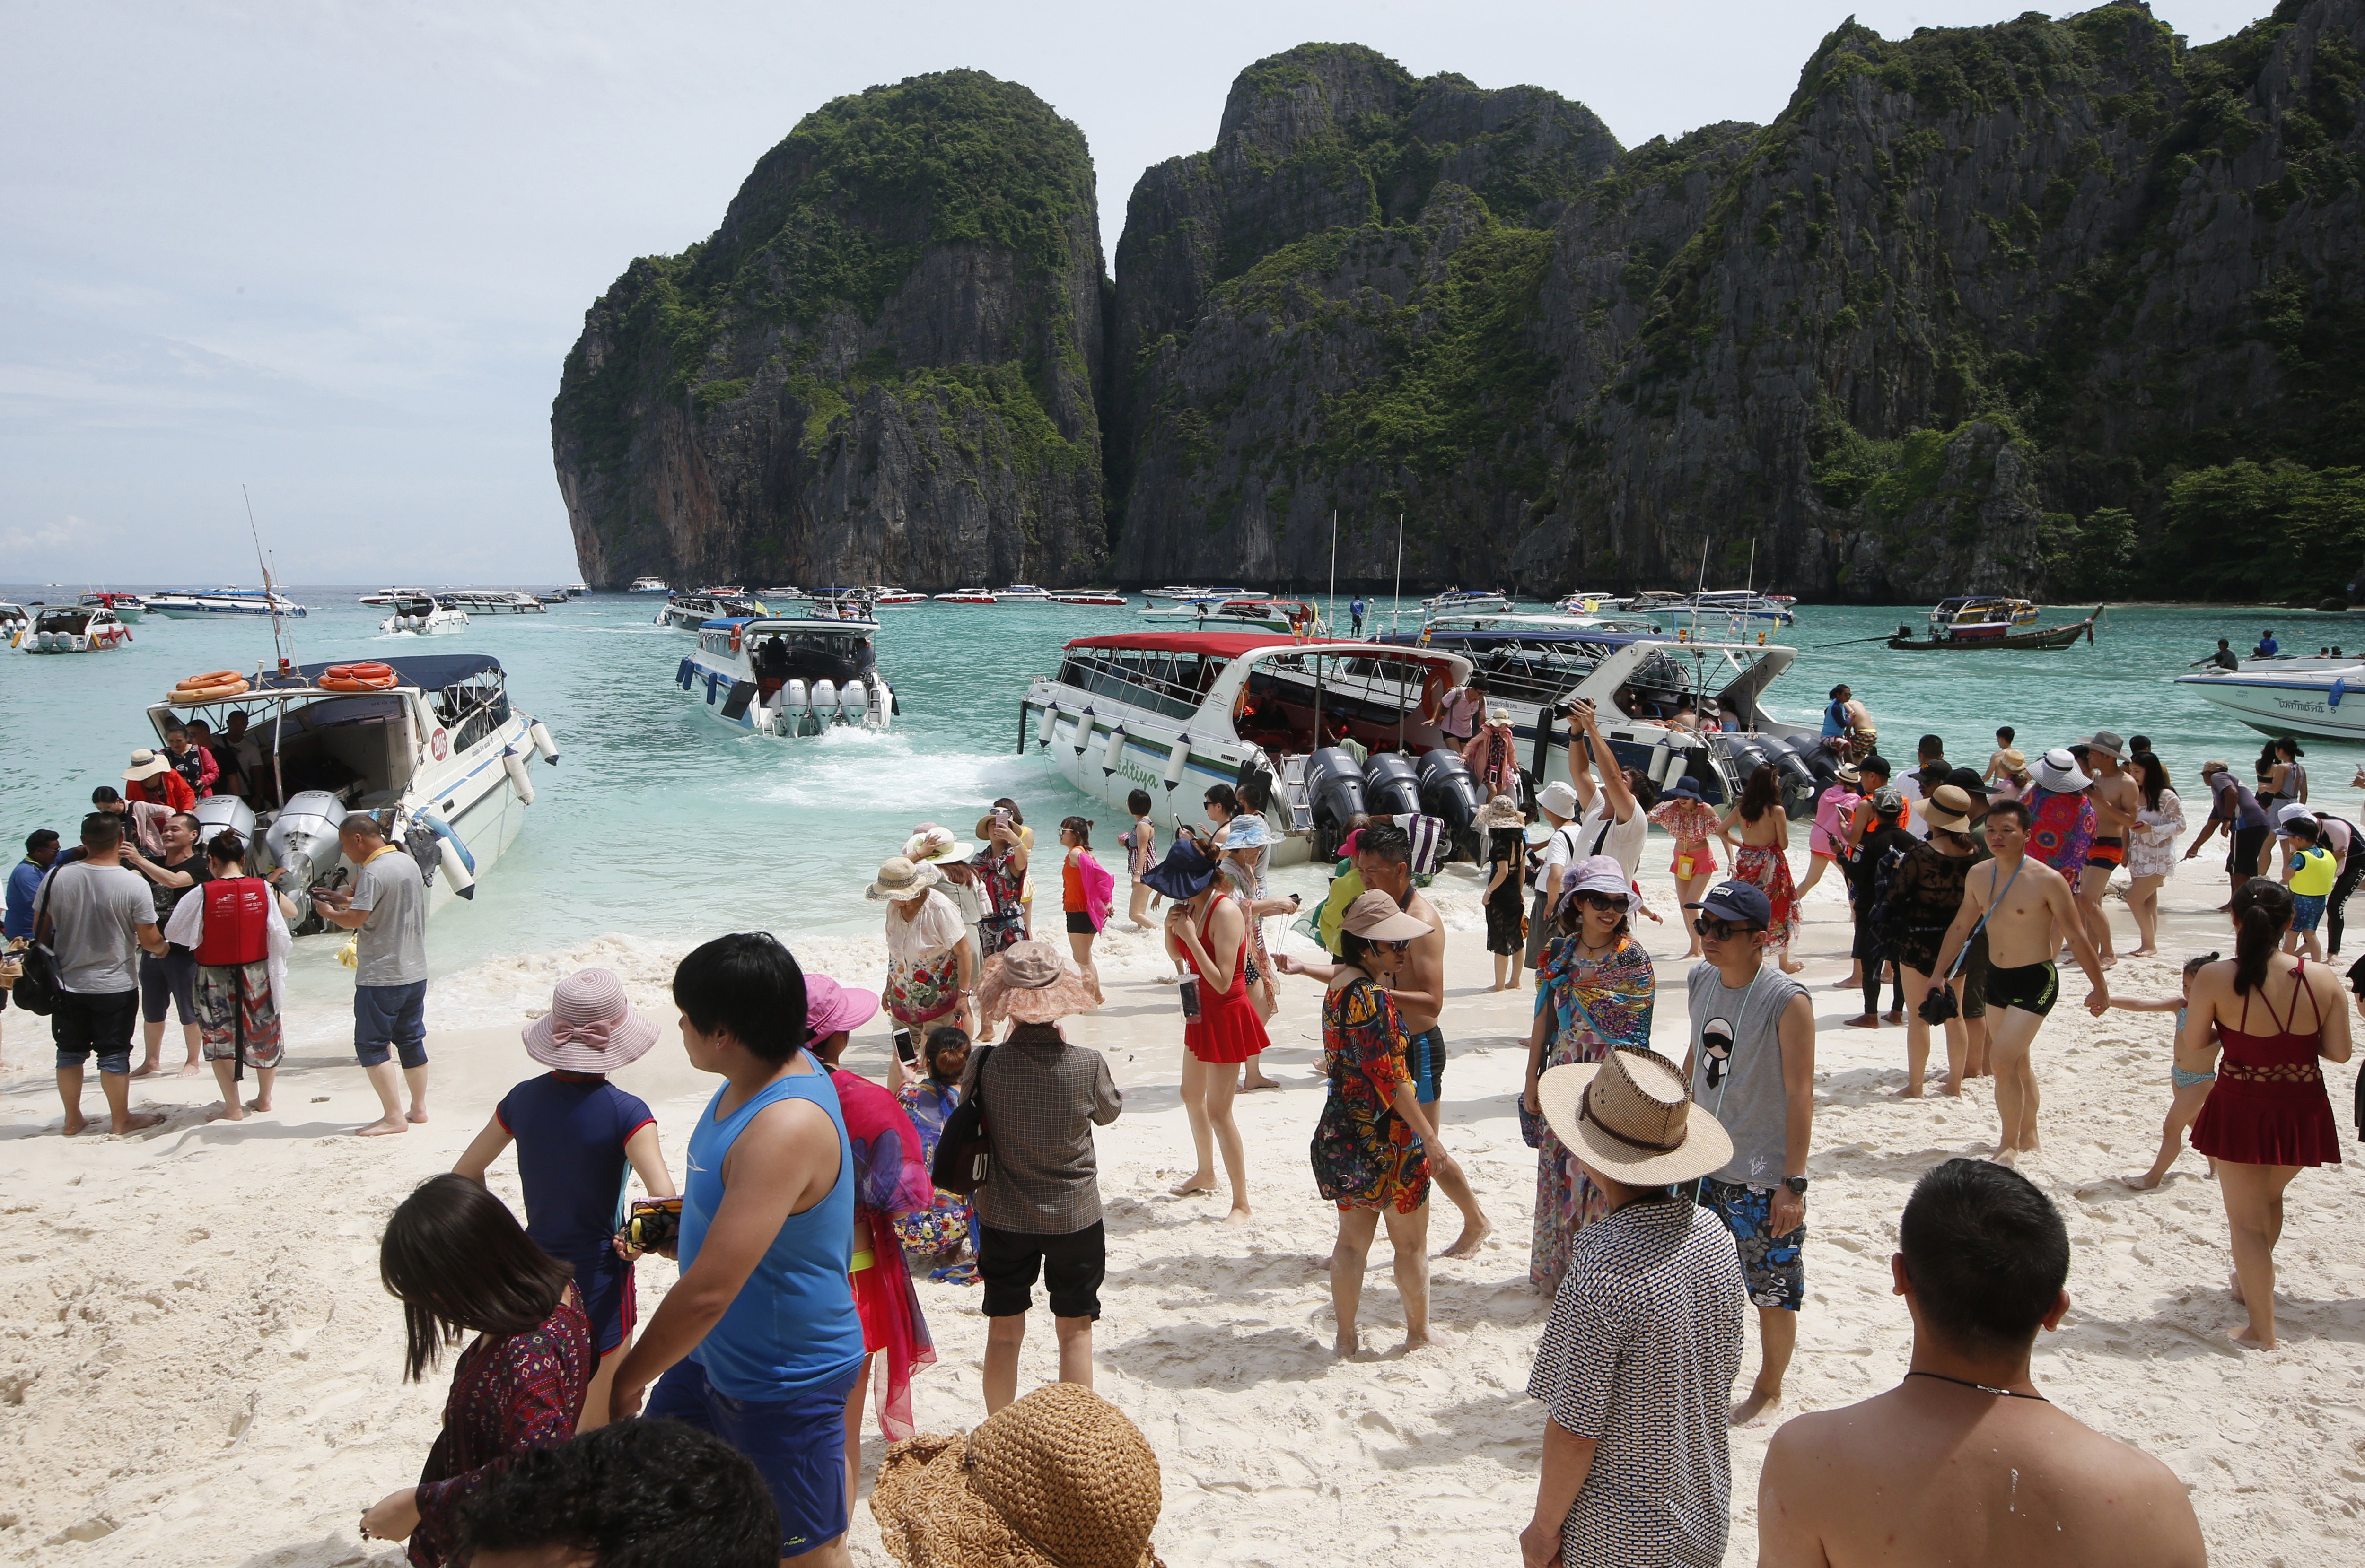 Tourists enjoy the beach on Maya Bay, Phi Phi Leh island in Krabi province, Thailand on May 31, 2018.